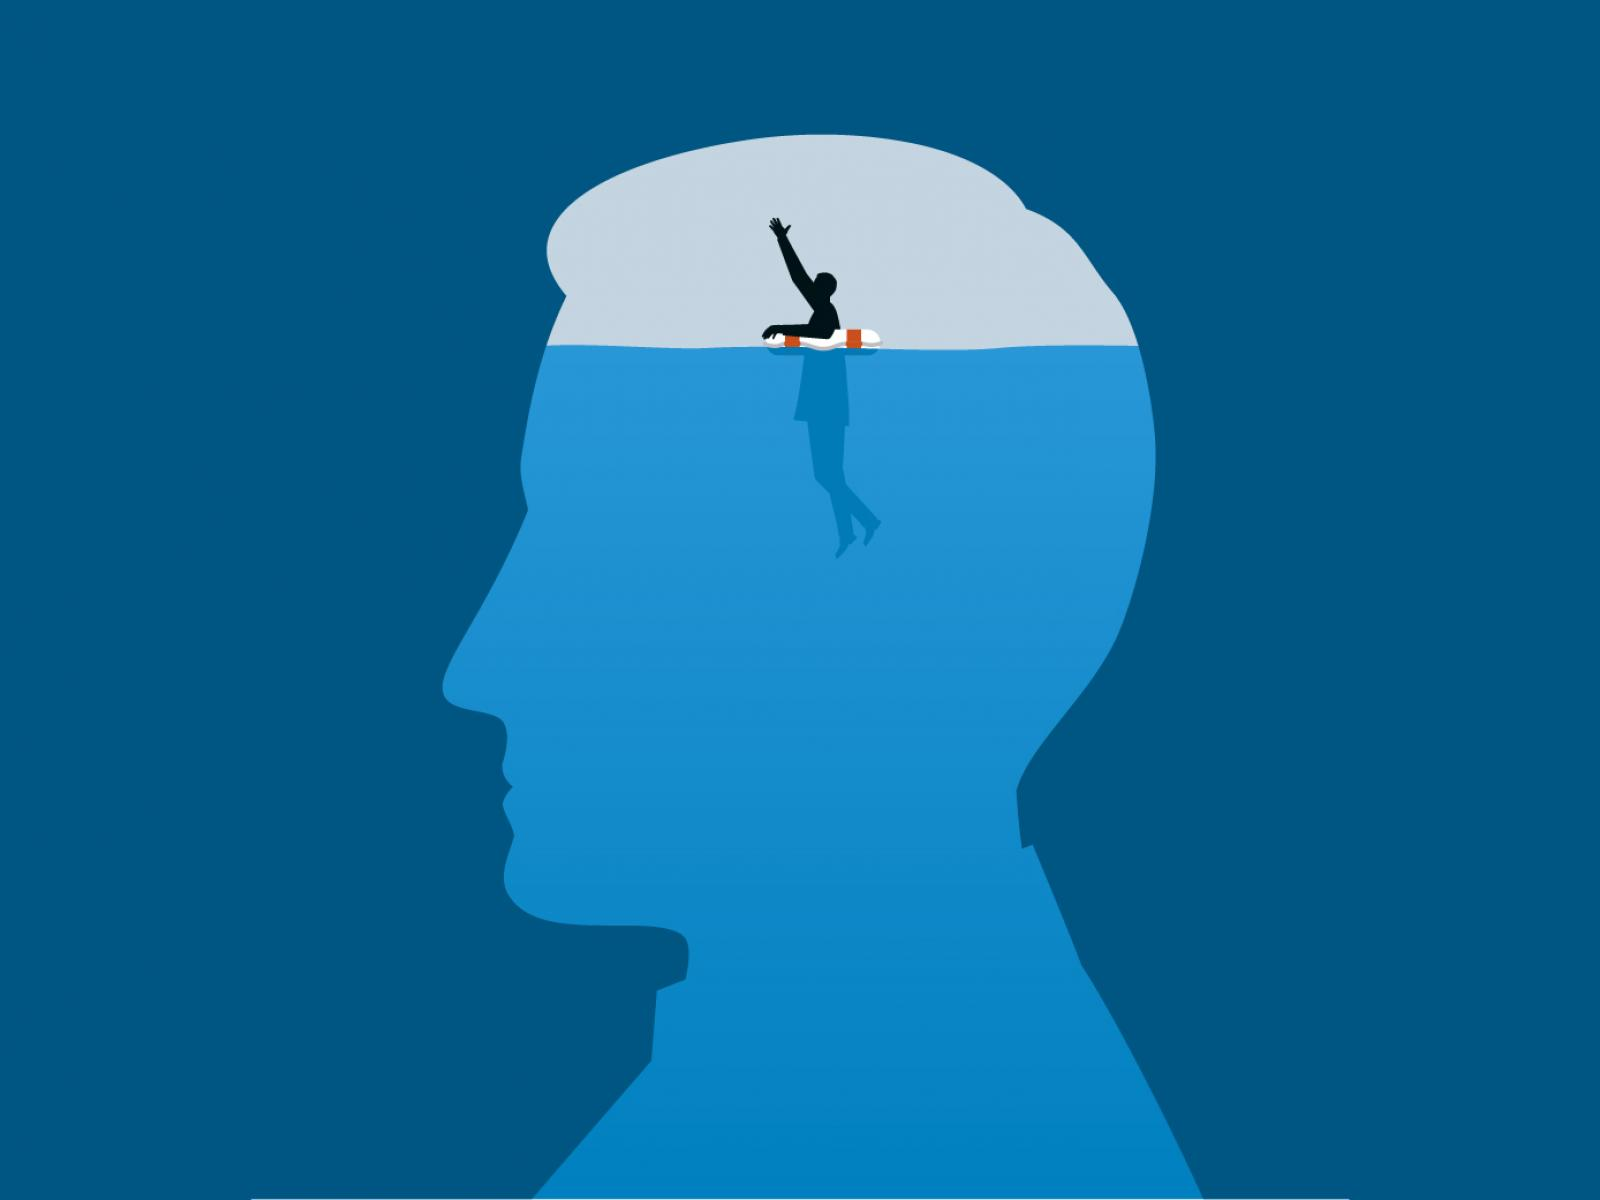 Illustration of man swimming inside the mind of a larger man